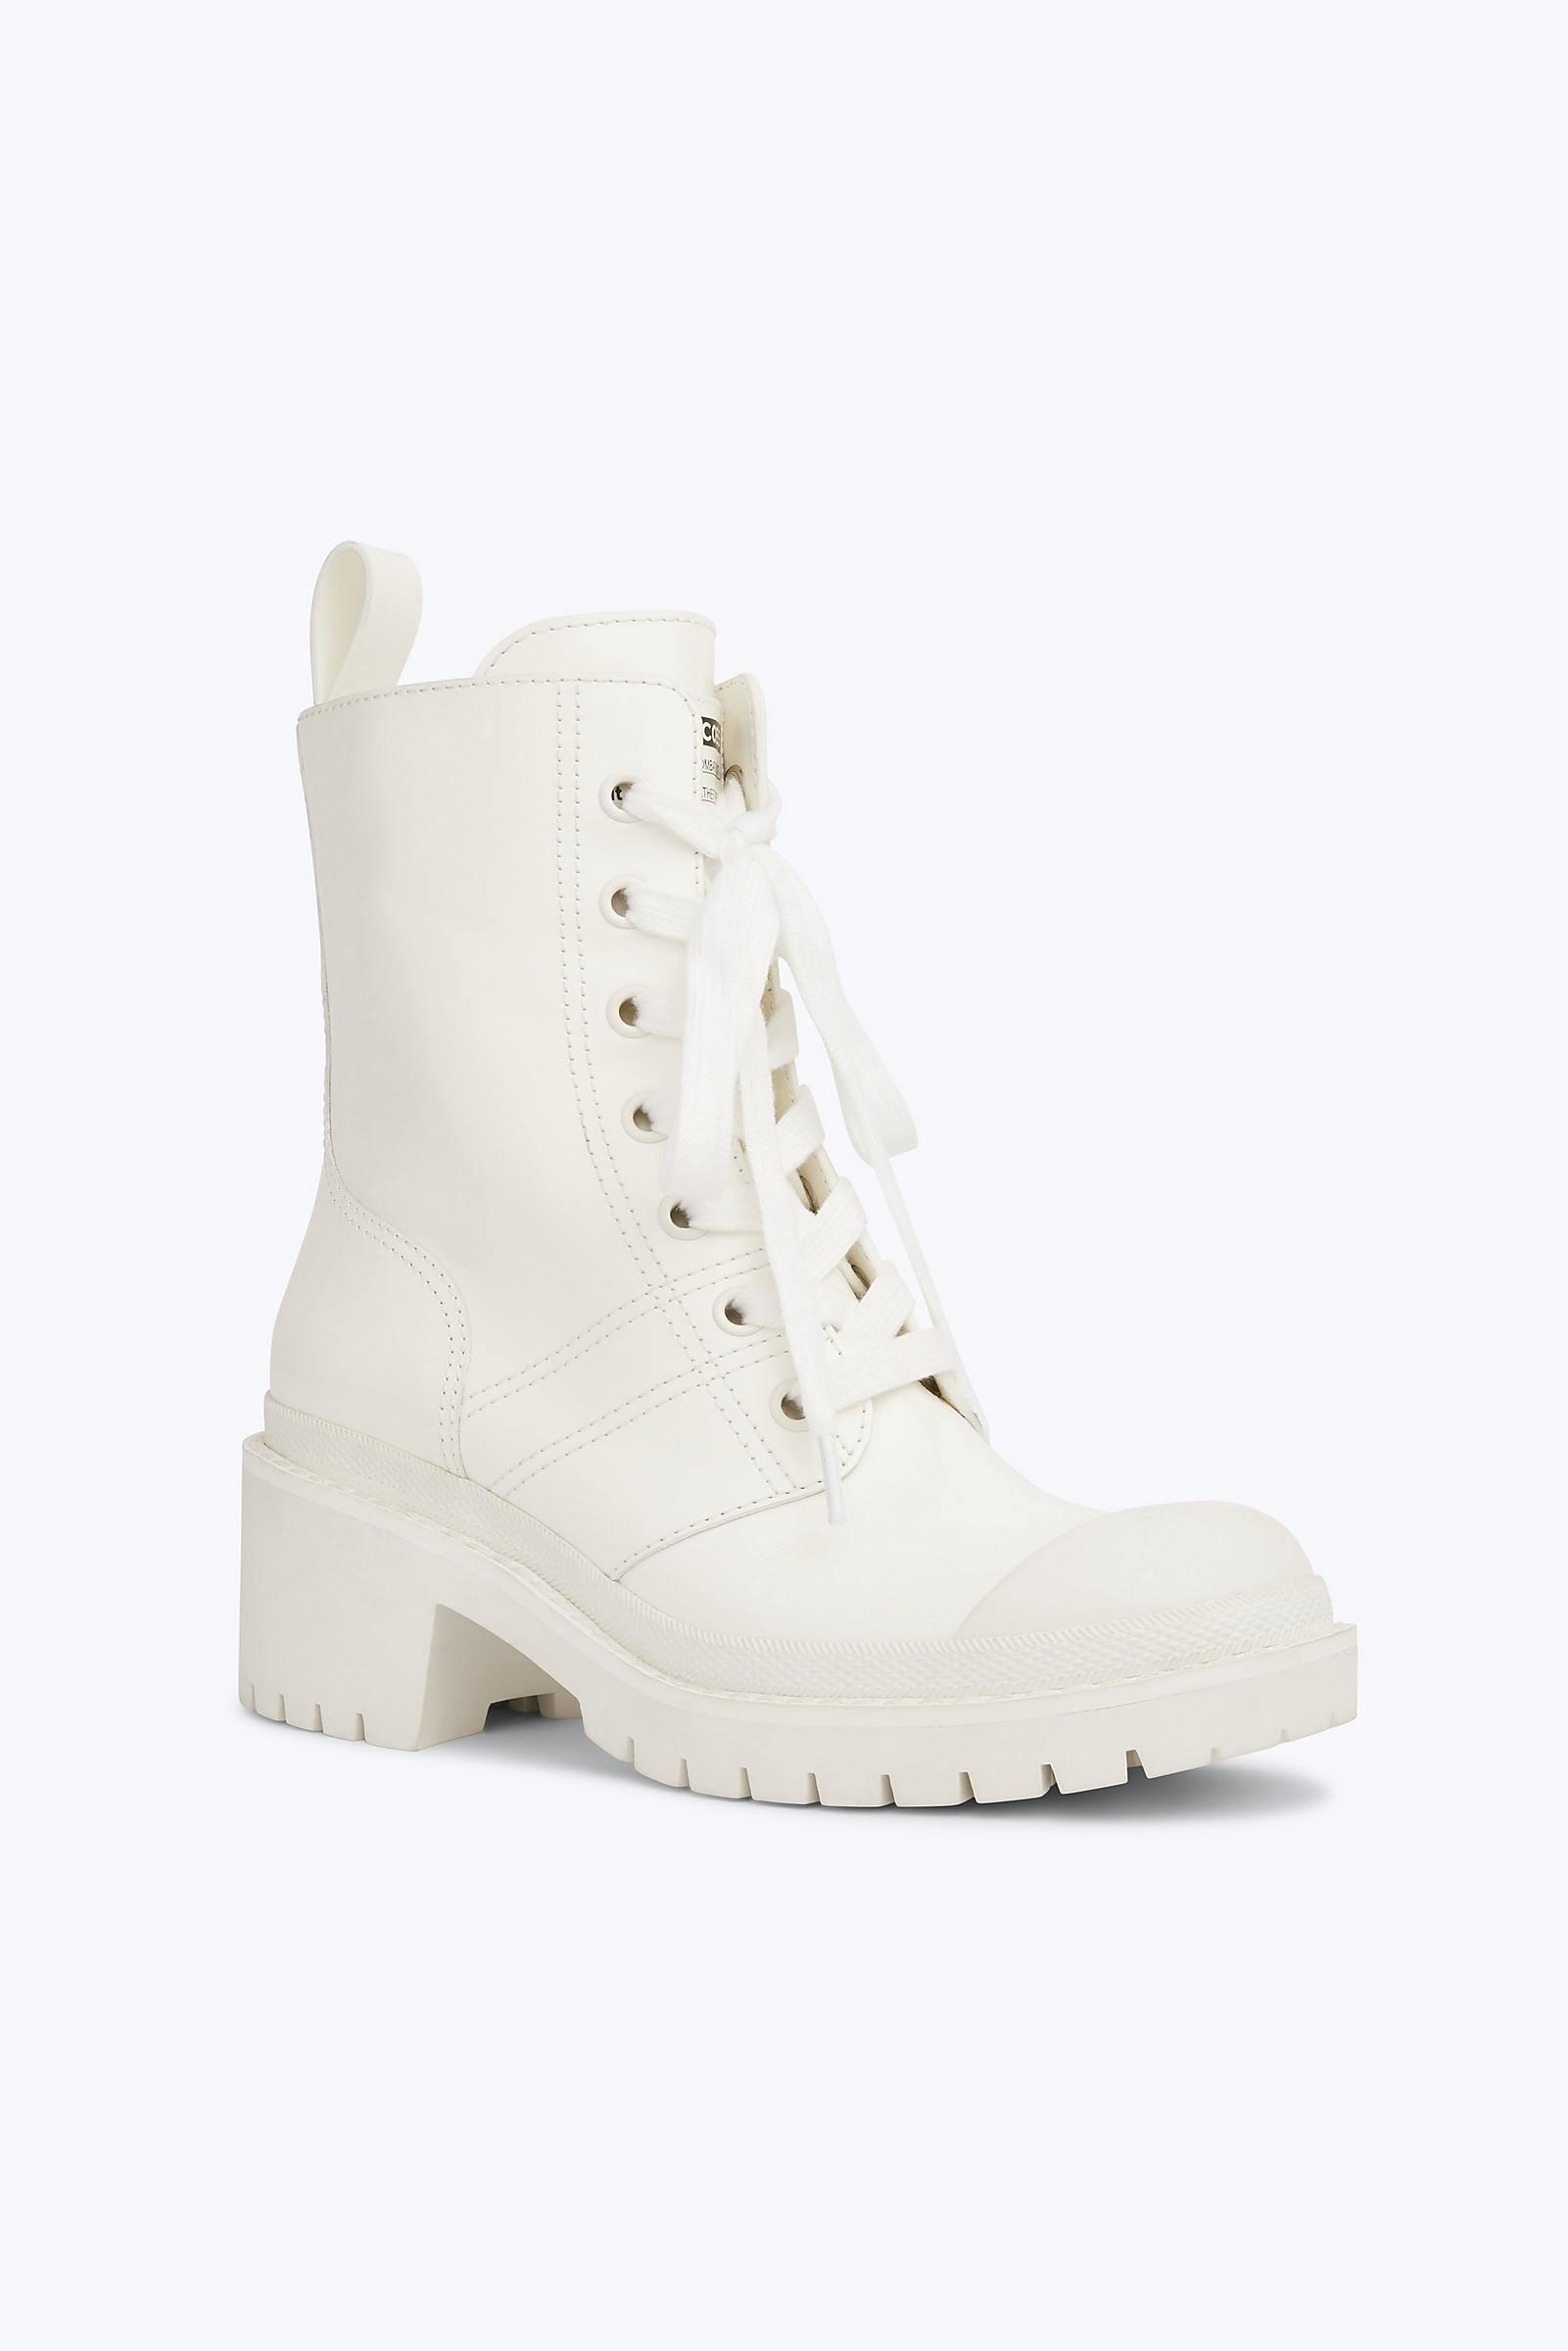 53e91542e30 Lyst - Marc Jacobs Bristol Lace Up Boot in White - Save 62%